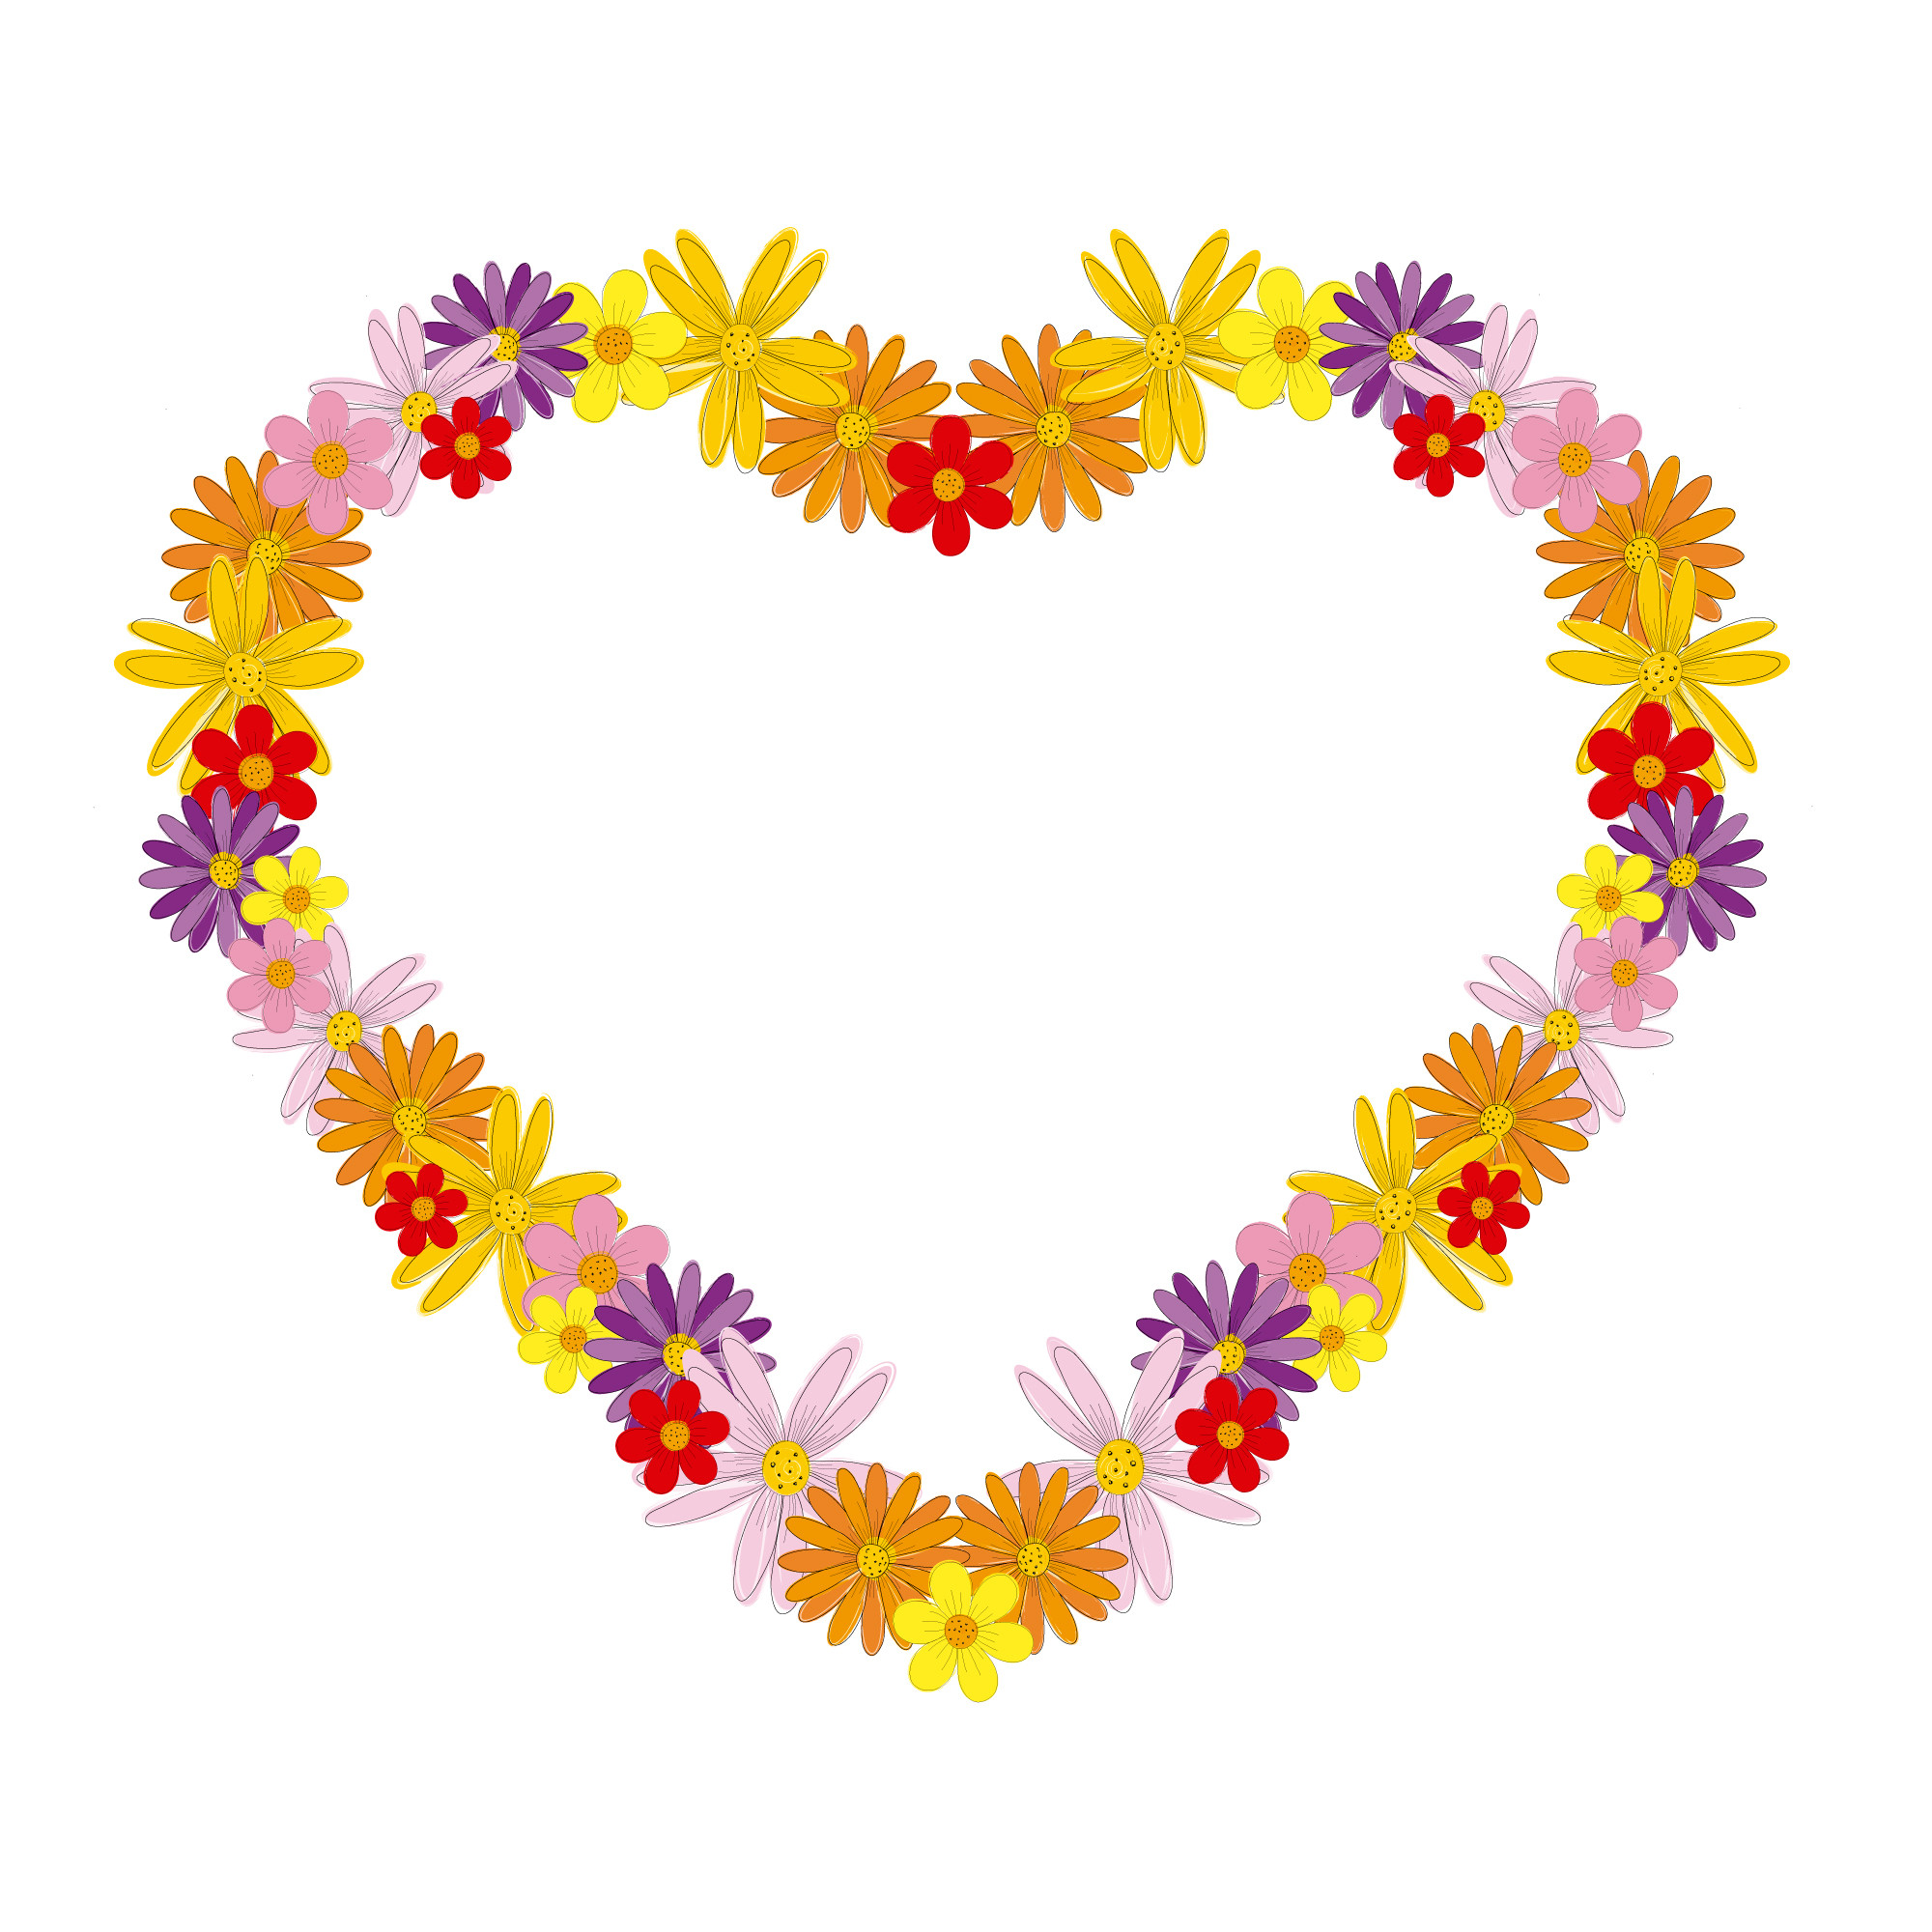 Heart frame with colorful flowers